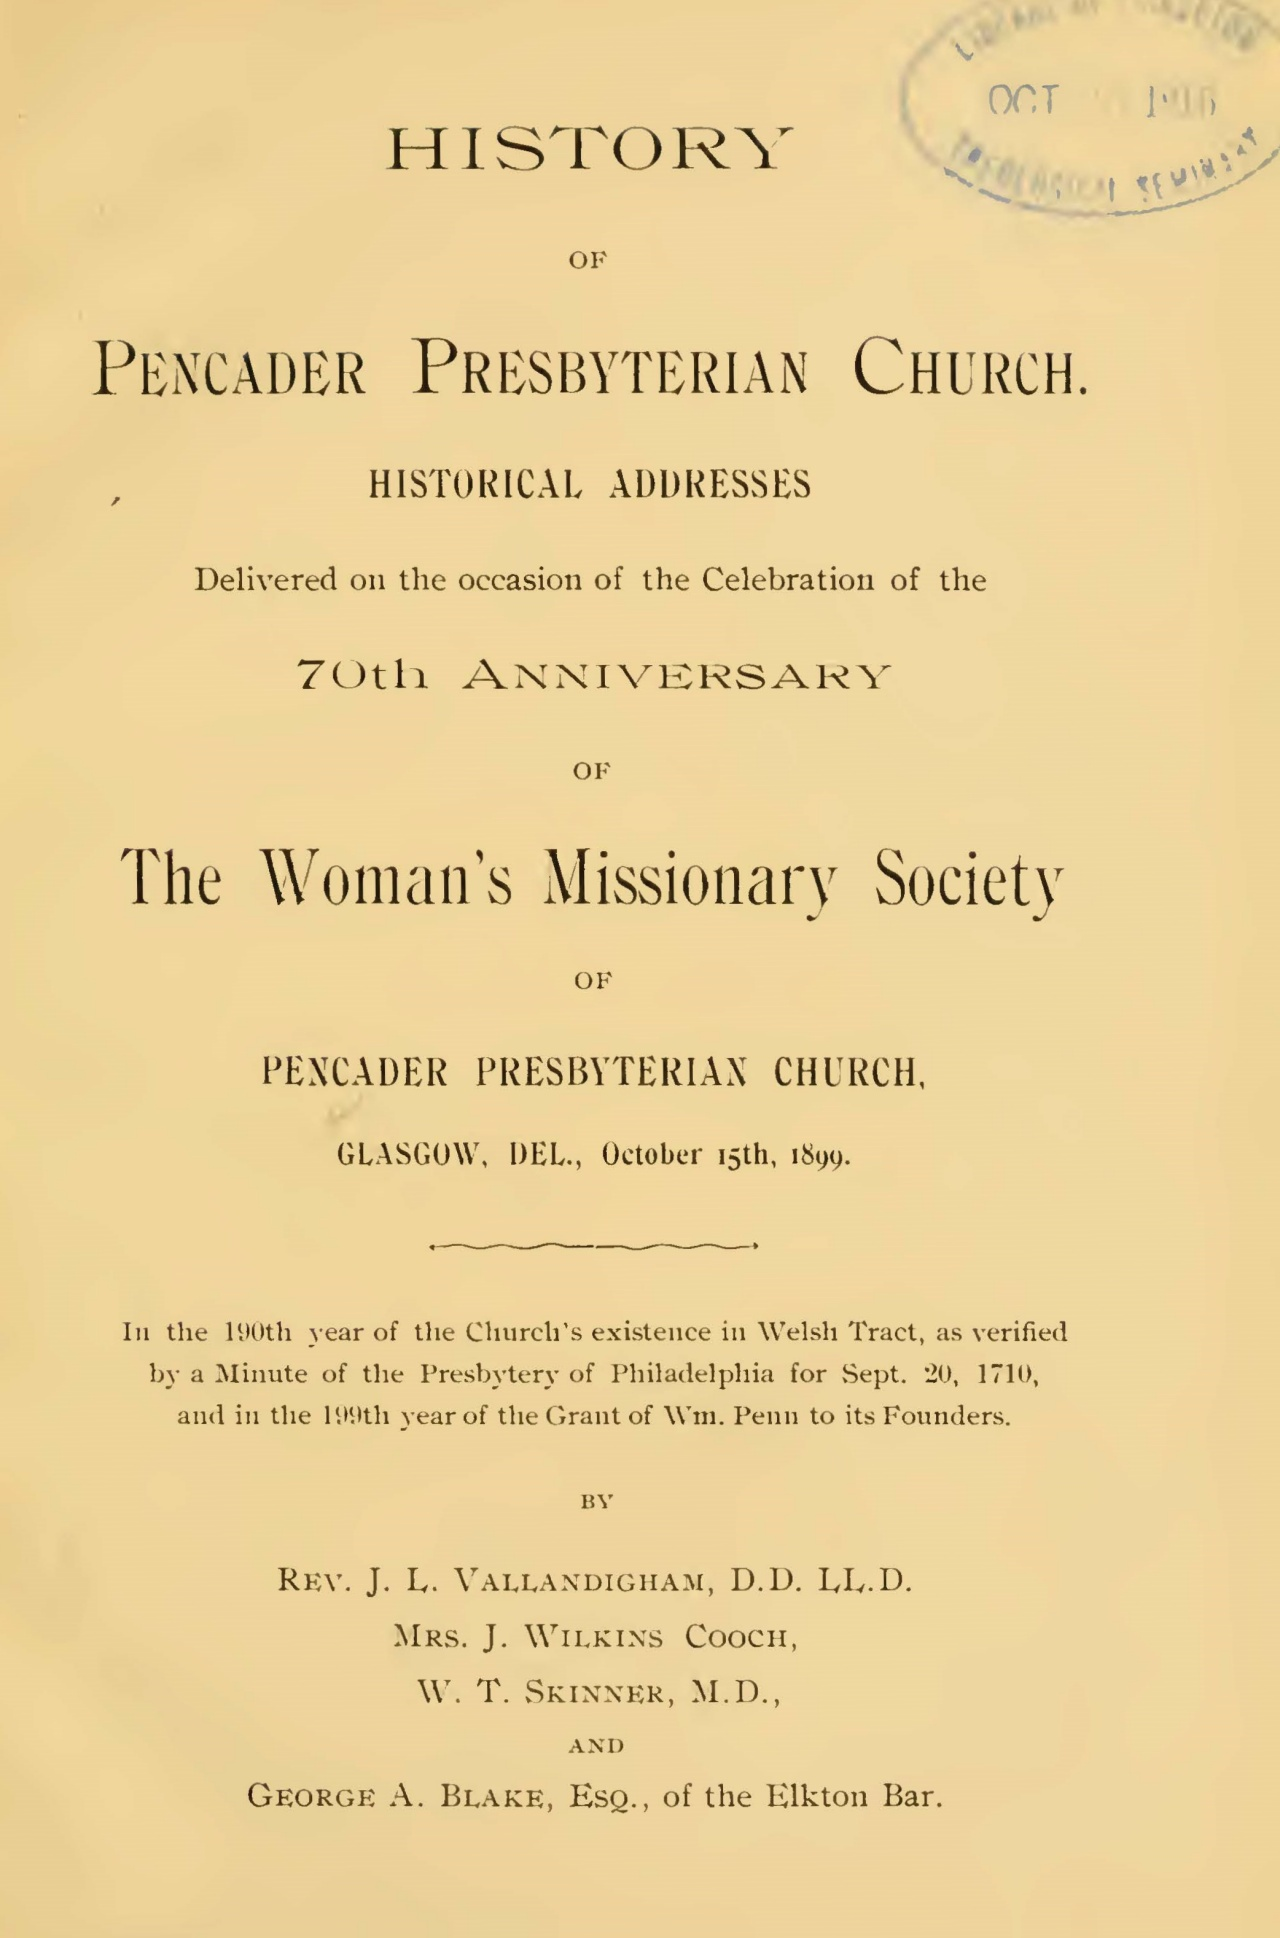 Vallandigham, James Laird, History of Pencader Presbyterian Church Title Page.jpg